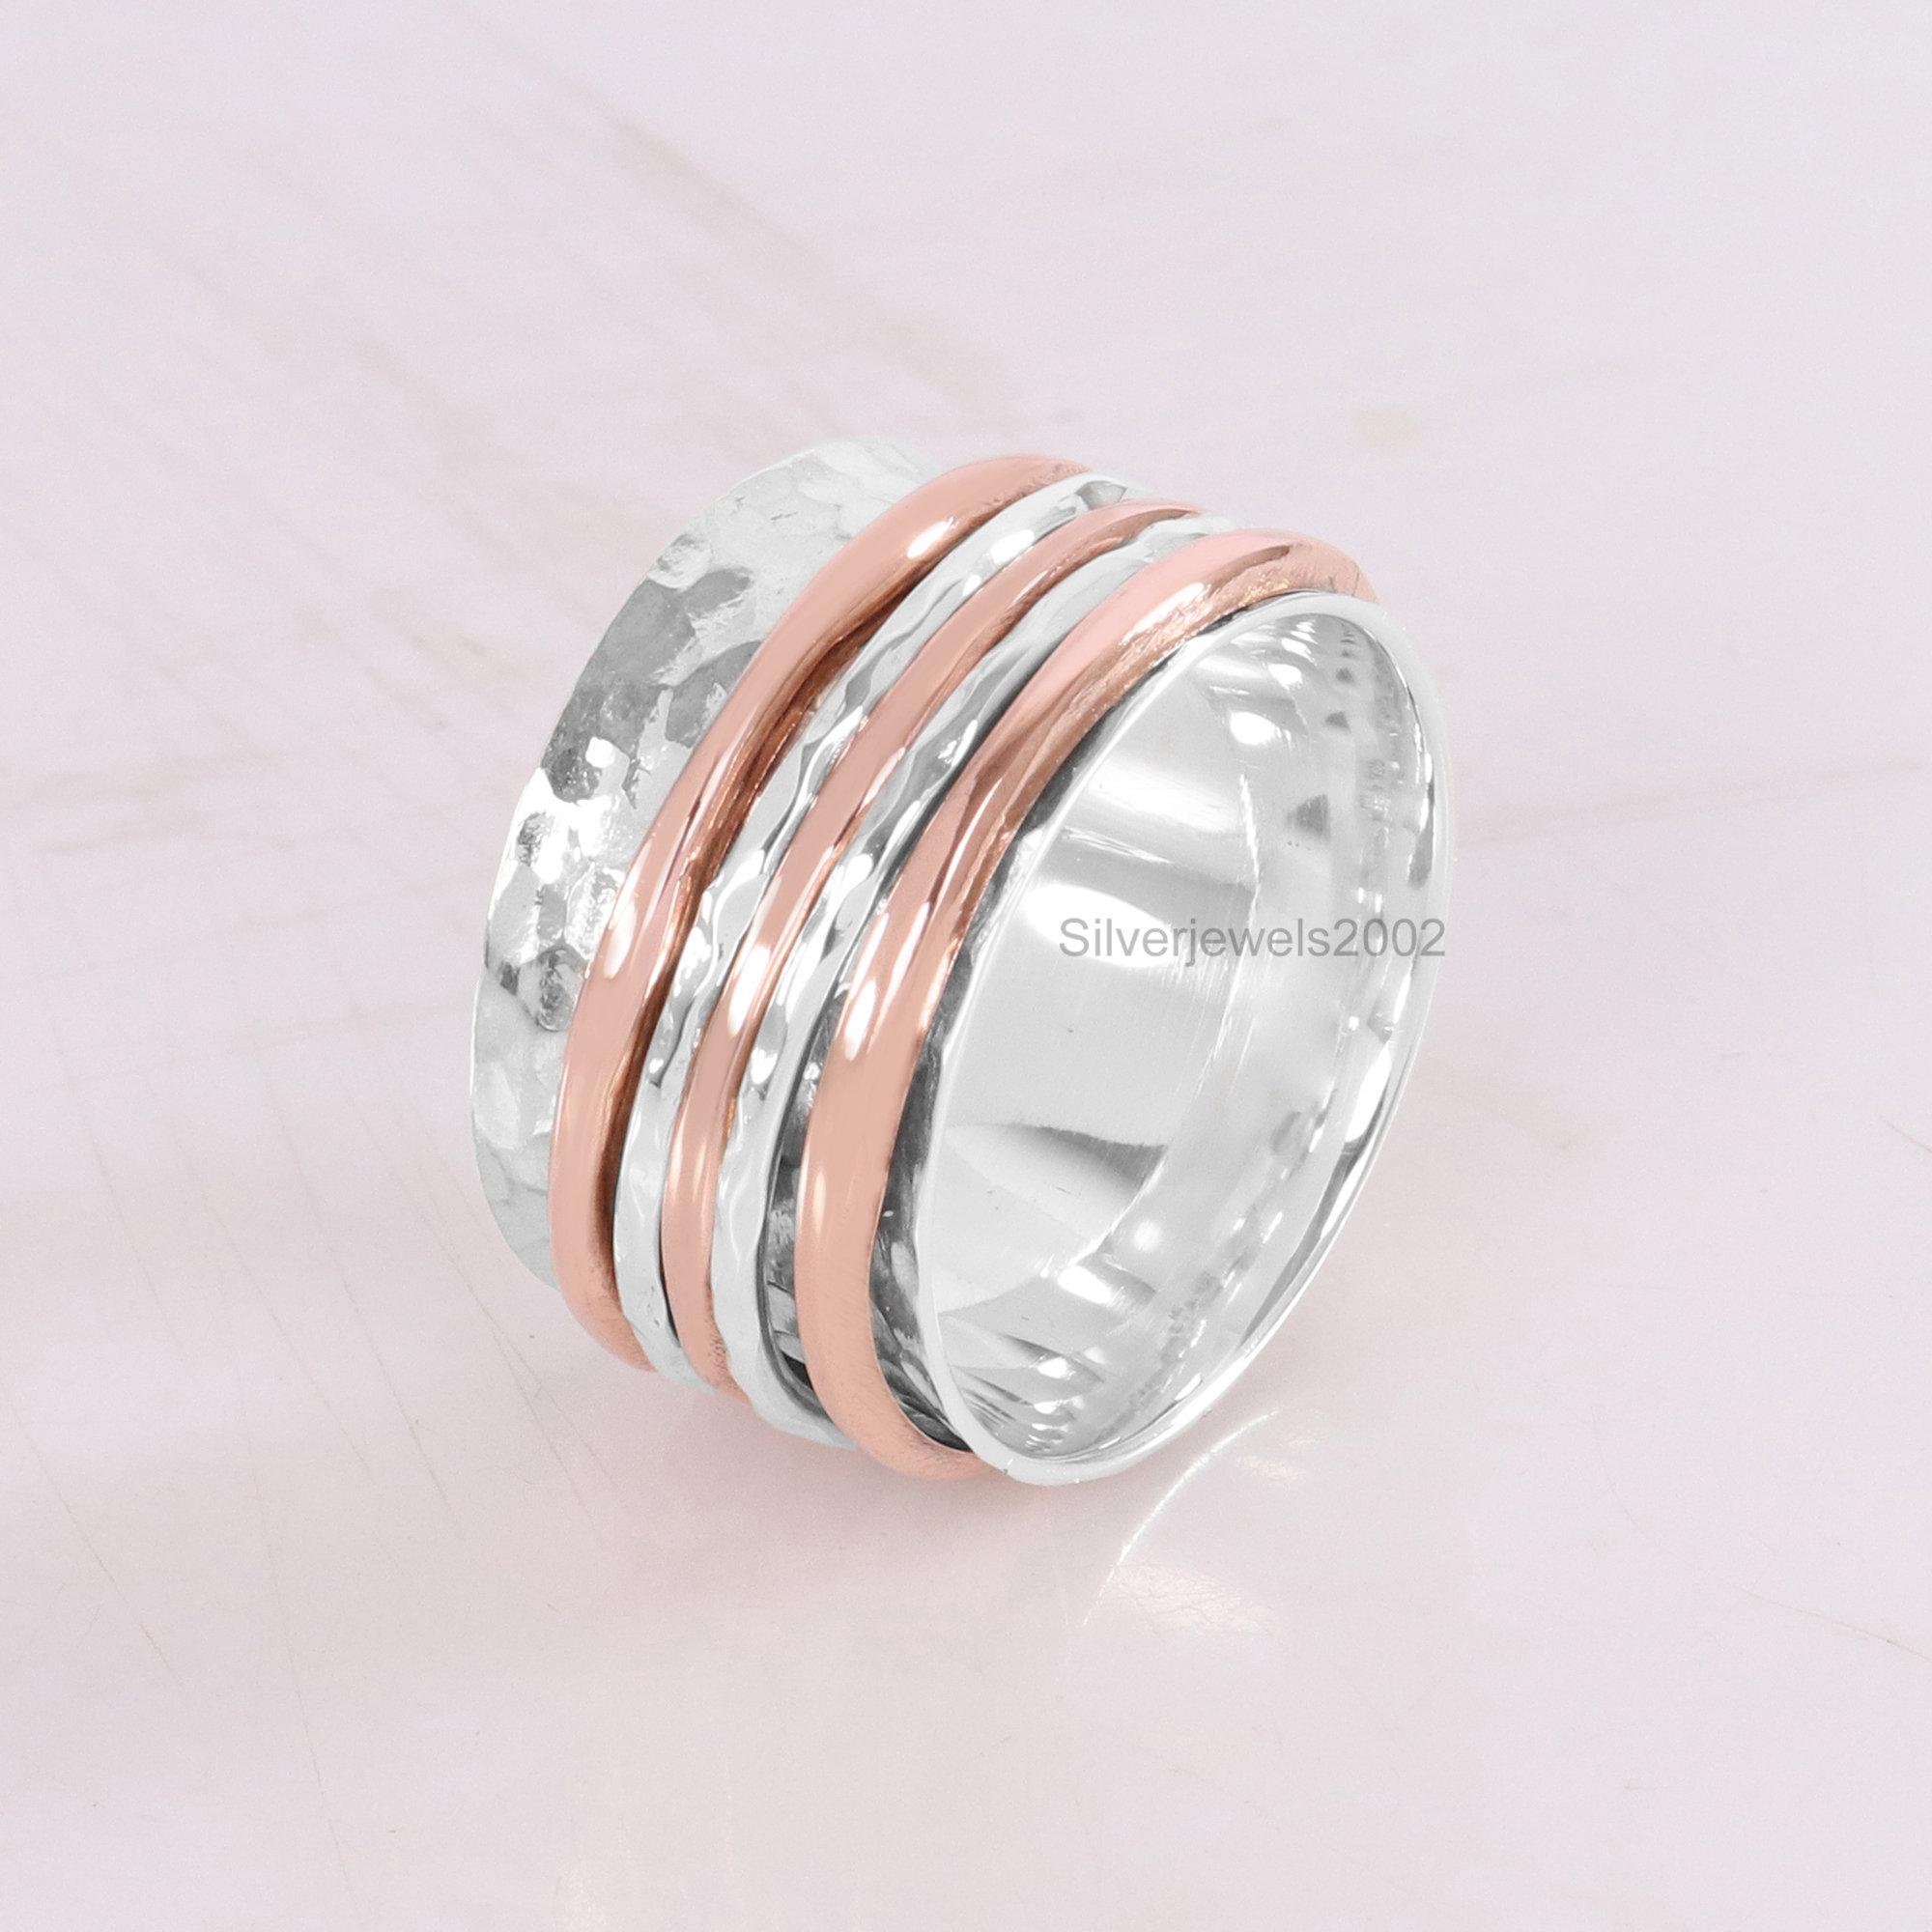 Sterling Silver Ring Hammered ring Thumb Ring Spinner Ring Fidget Ring Worry Ring Sterling Silver 925